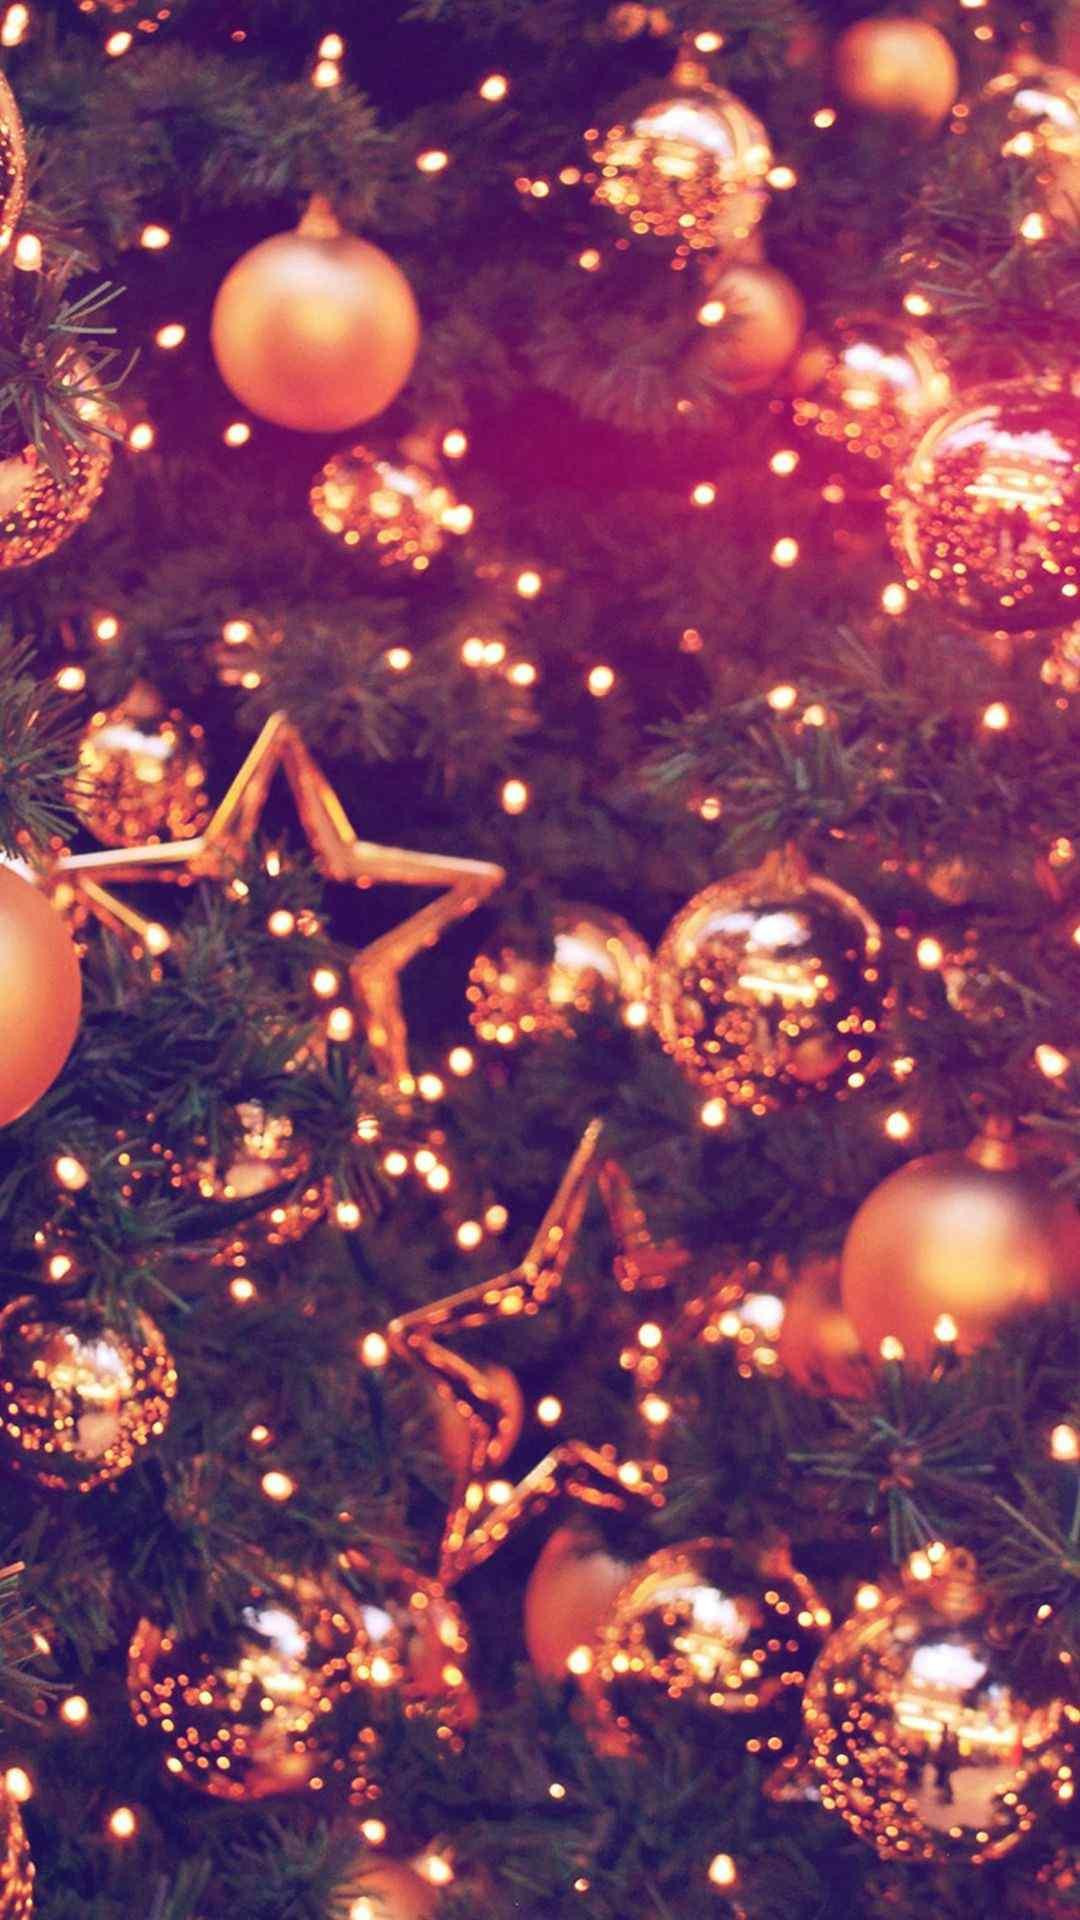 258 2583219 simple christmas backgrounds christmas wallpaper for phone